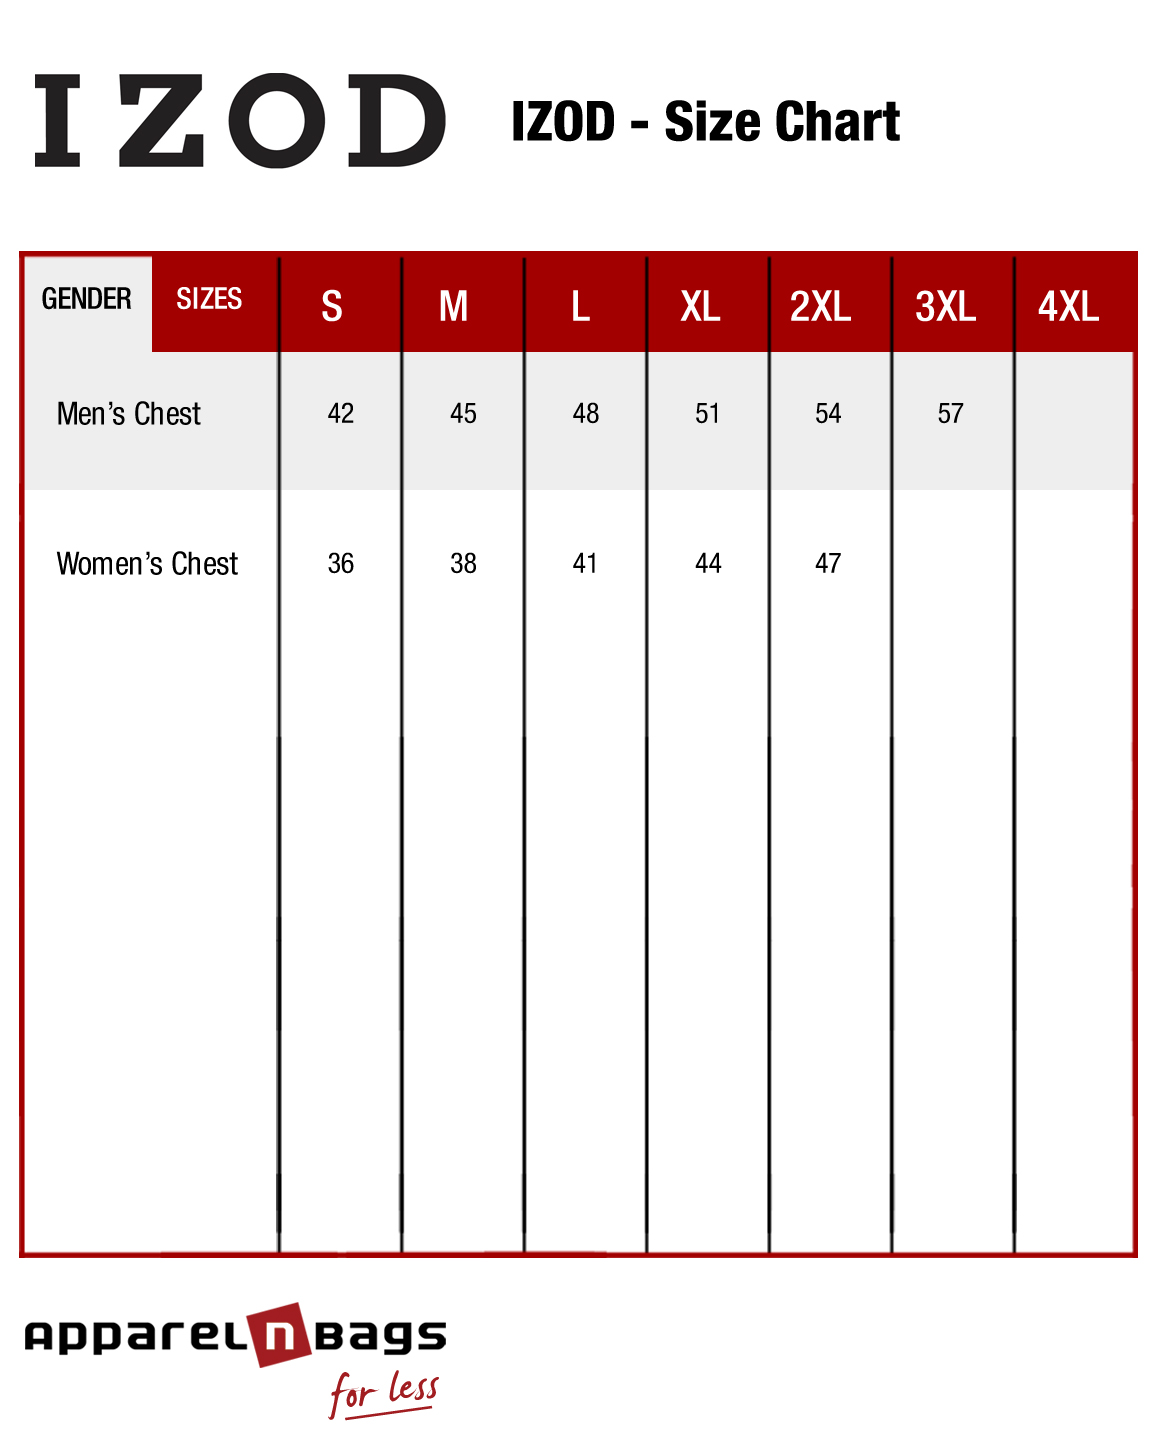 izod fit guide and clothing size chart at